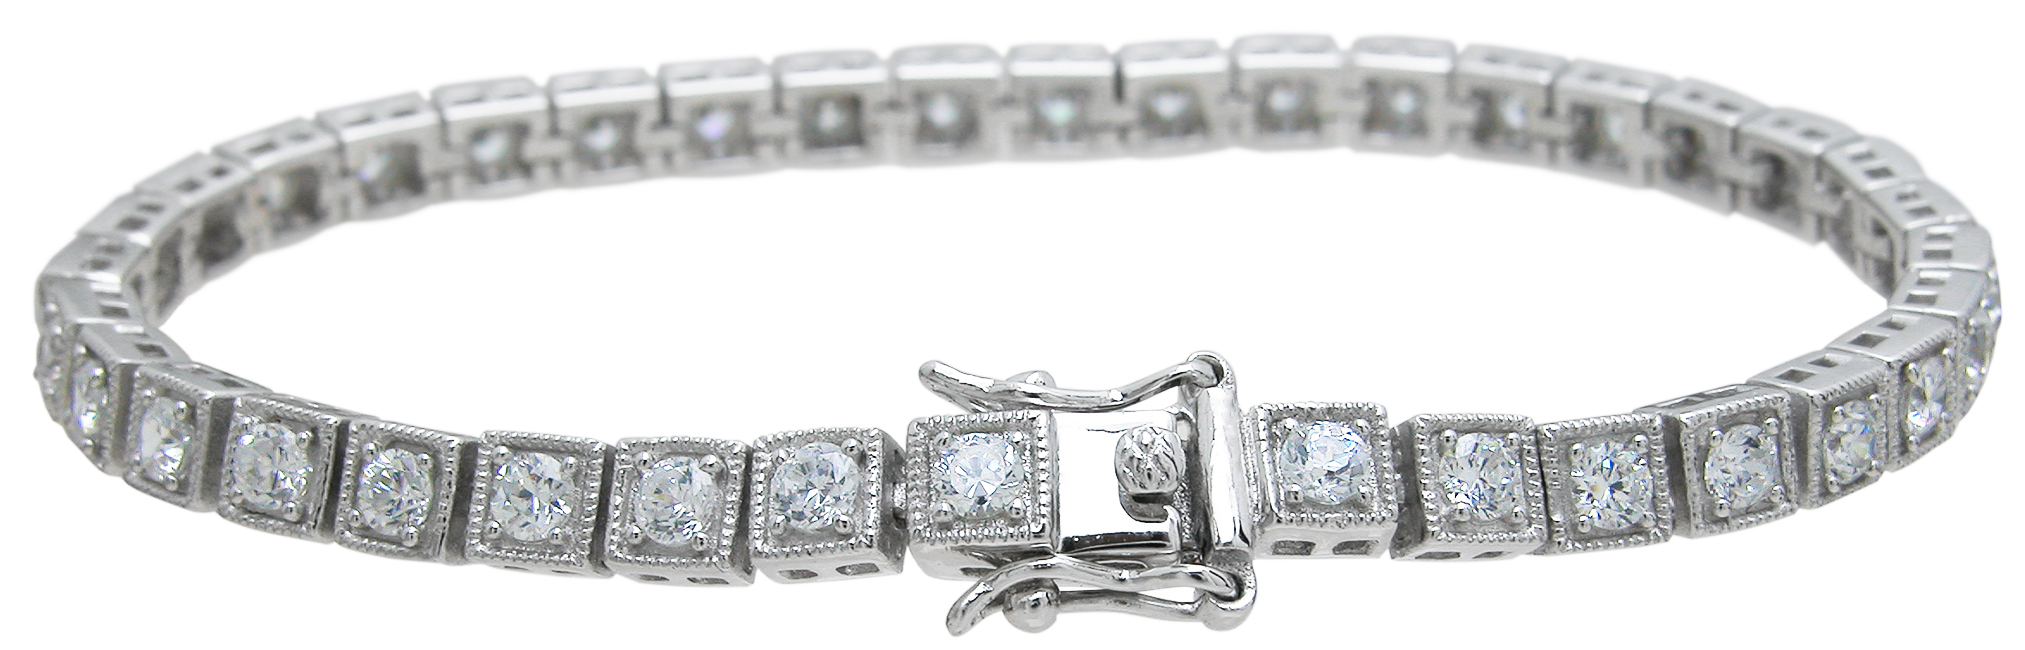 Wholesale 925 Sterling Silver Snitque Style Bracelet